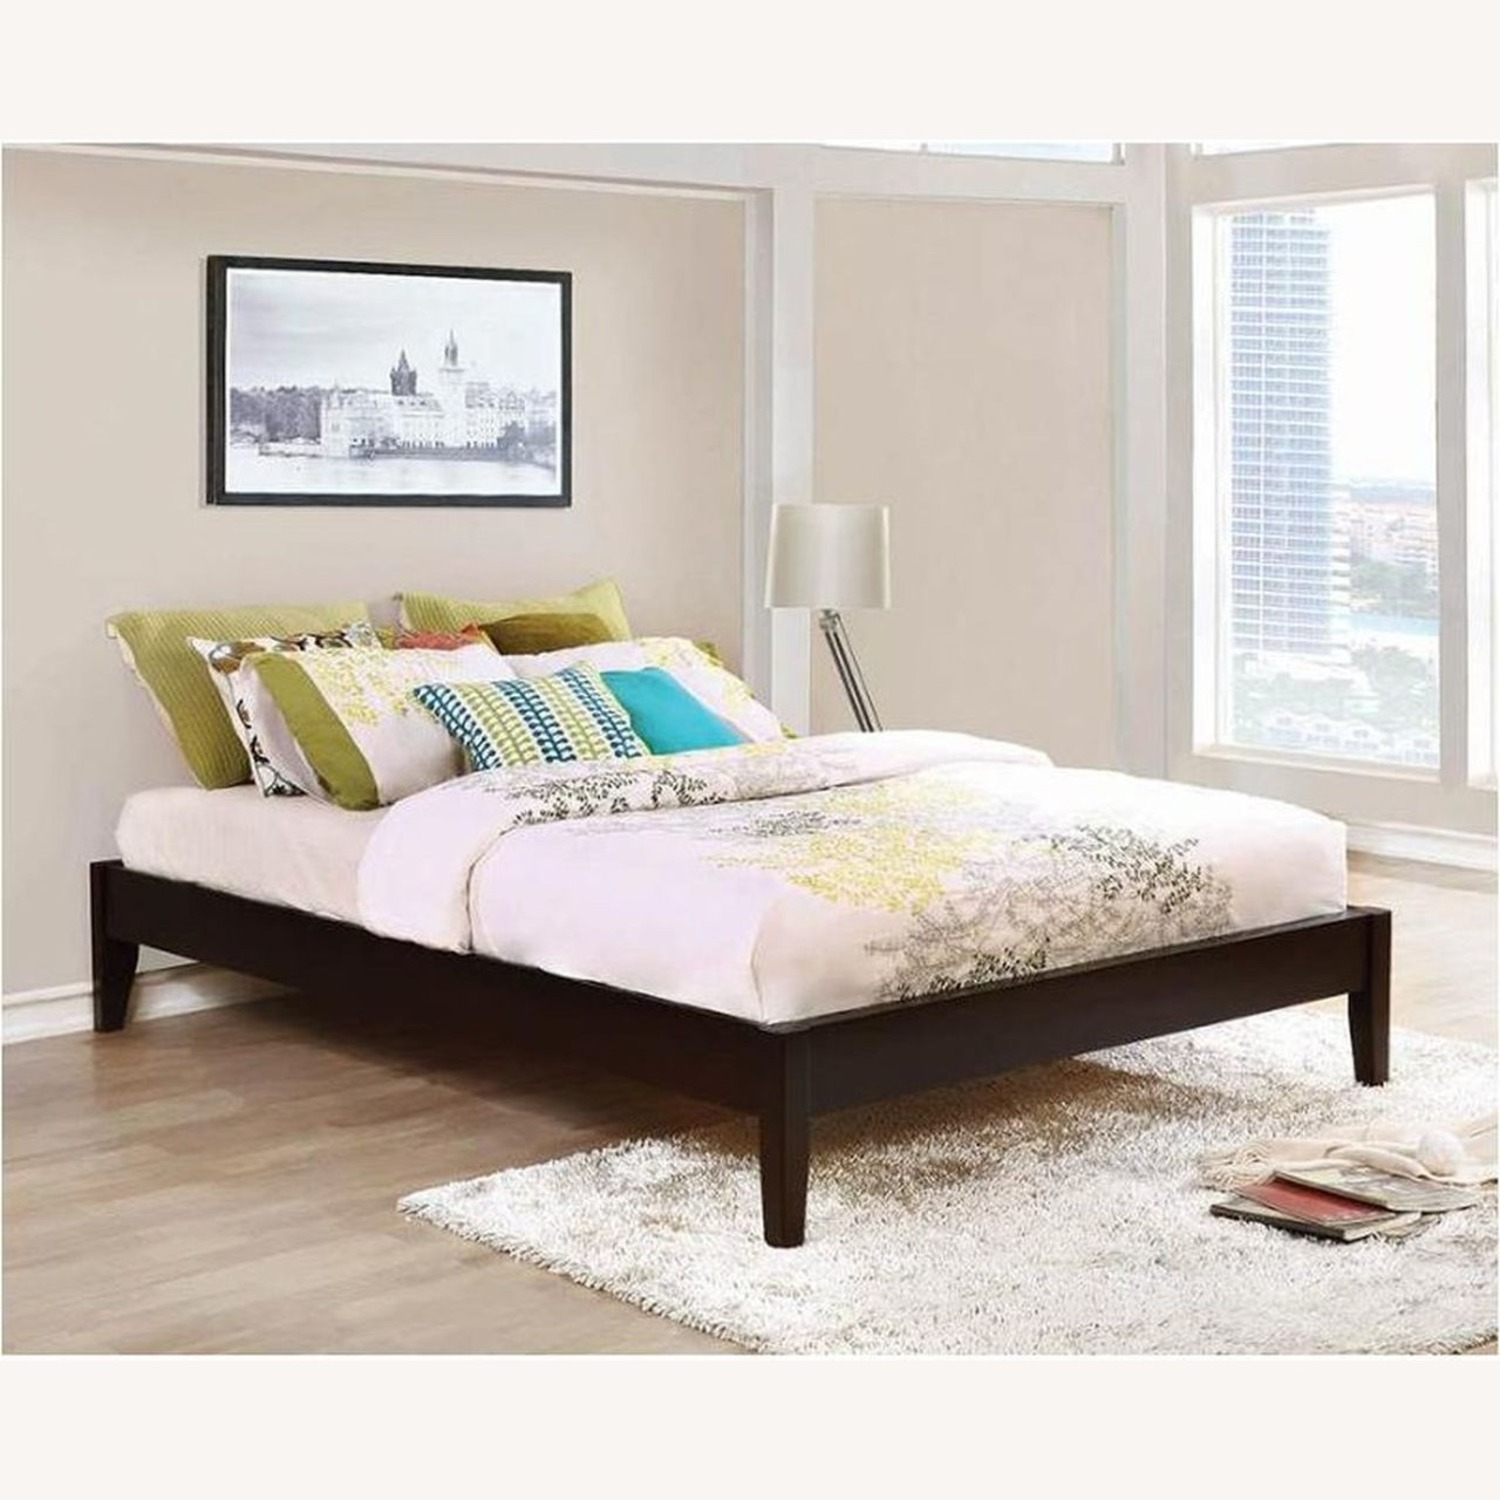 Versatile King Bed In Cappuccino Finish - image-2